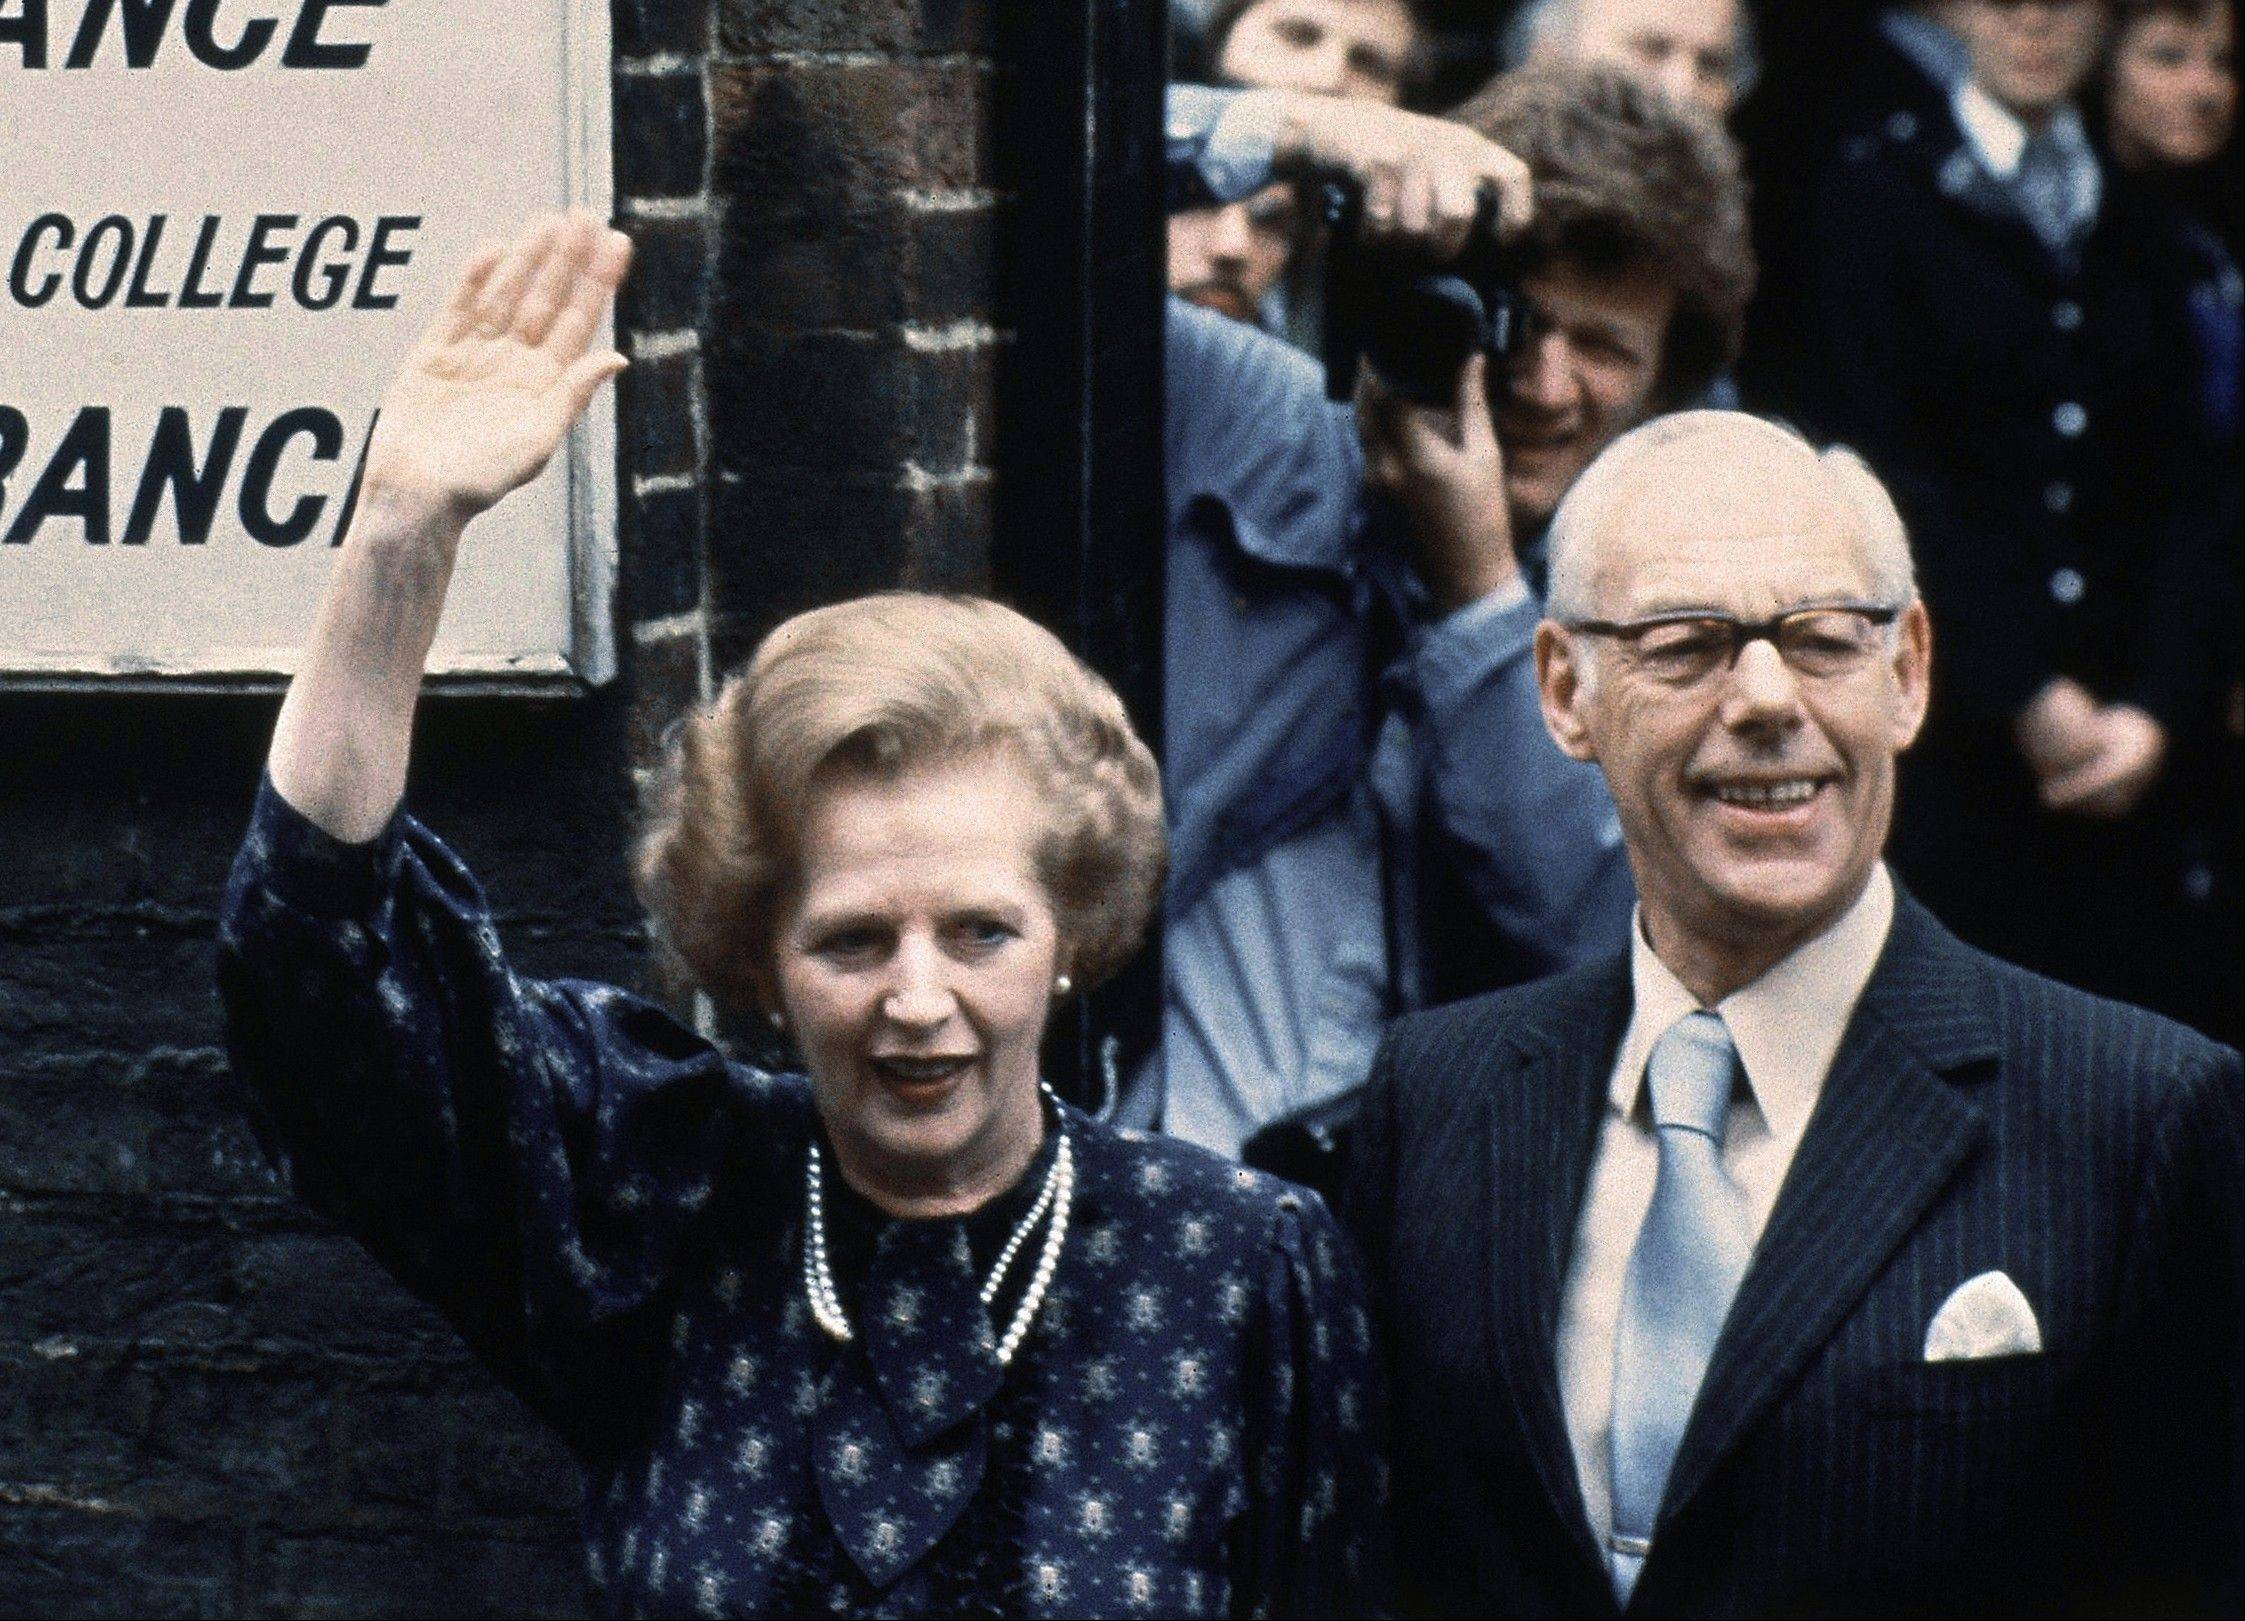 This is a June 9, 1983. file photo of British Prime Minister Margaret Thatcher leaves the Castle lane, Westminster, London England polling station with her husband, Dennis, after casting their votes in the general election. Former British Prime Minister Margaret Thatcher, whose conservative ideas made an enduring impact on Britain Monday April 8, 2013, has died. She was 87.